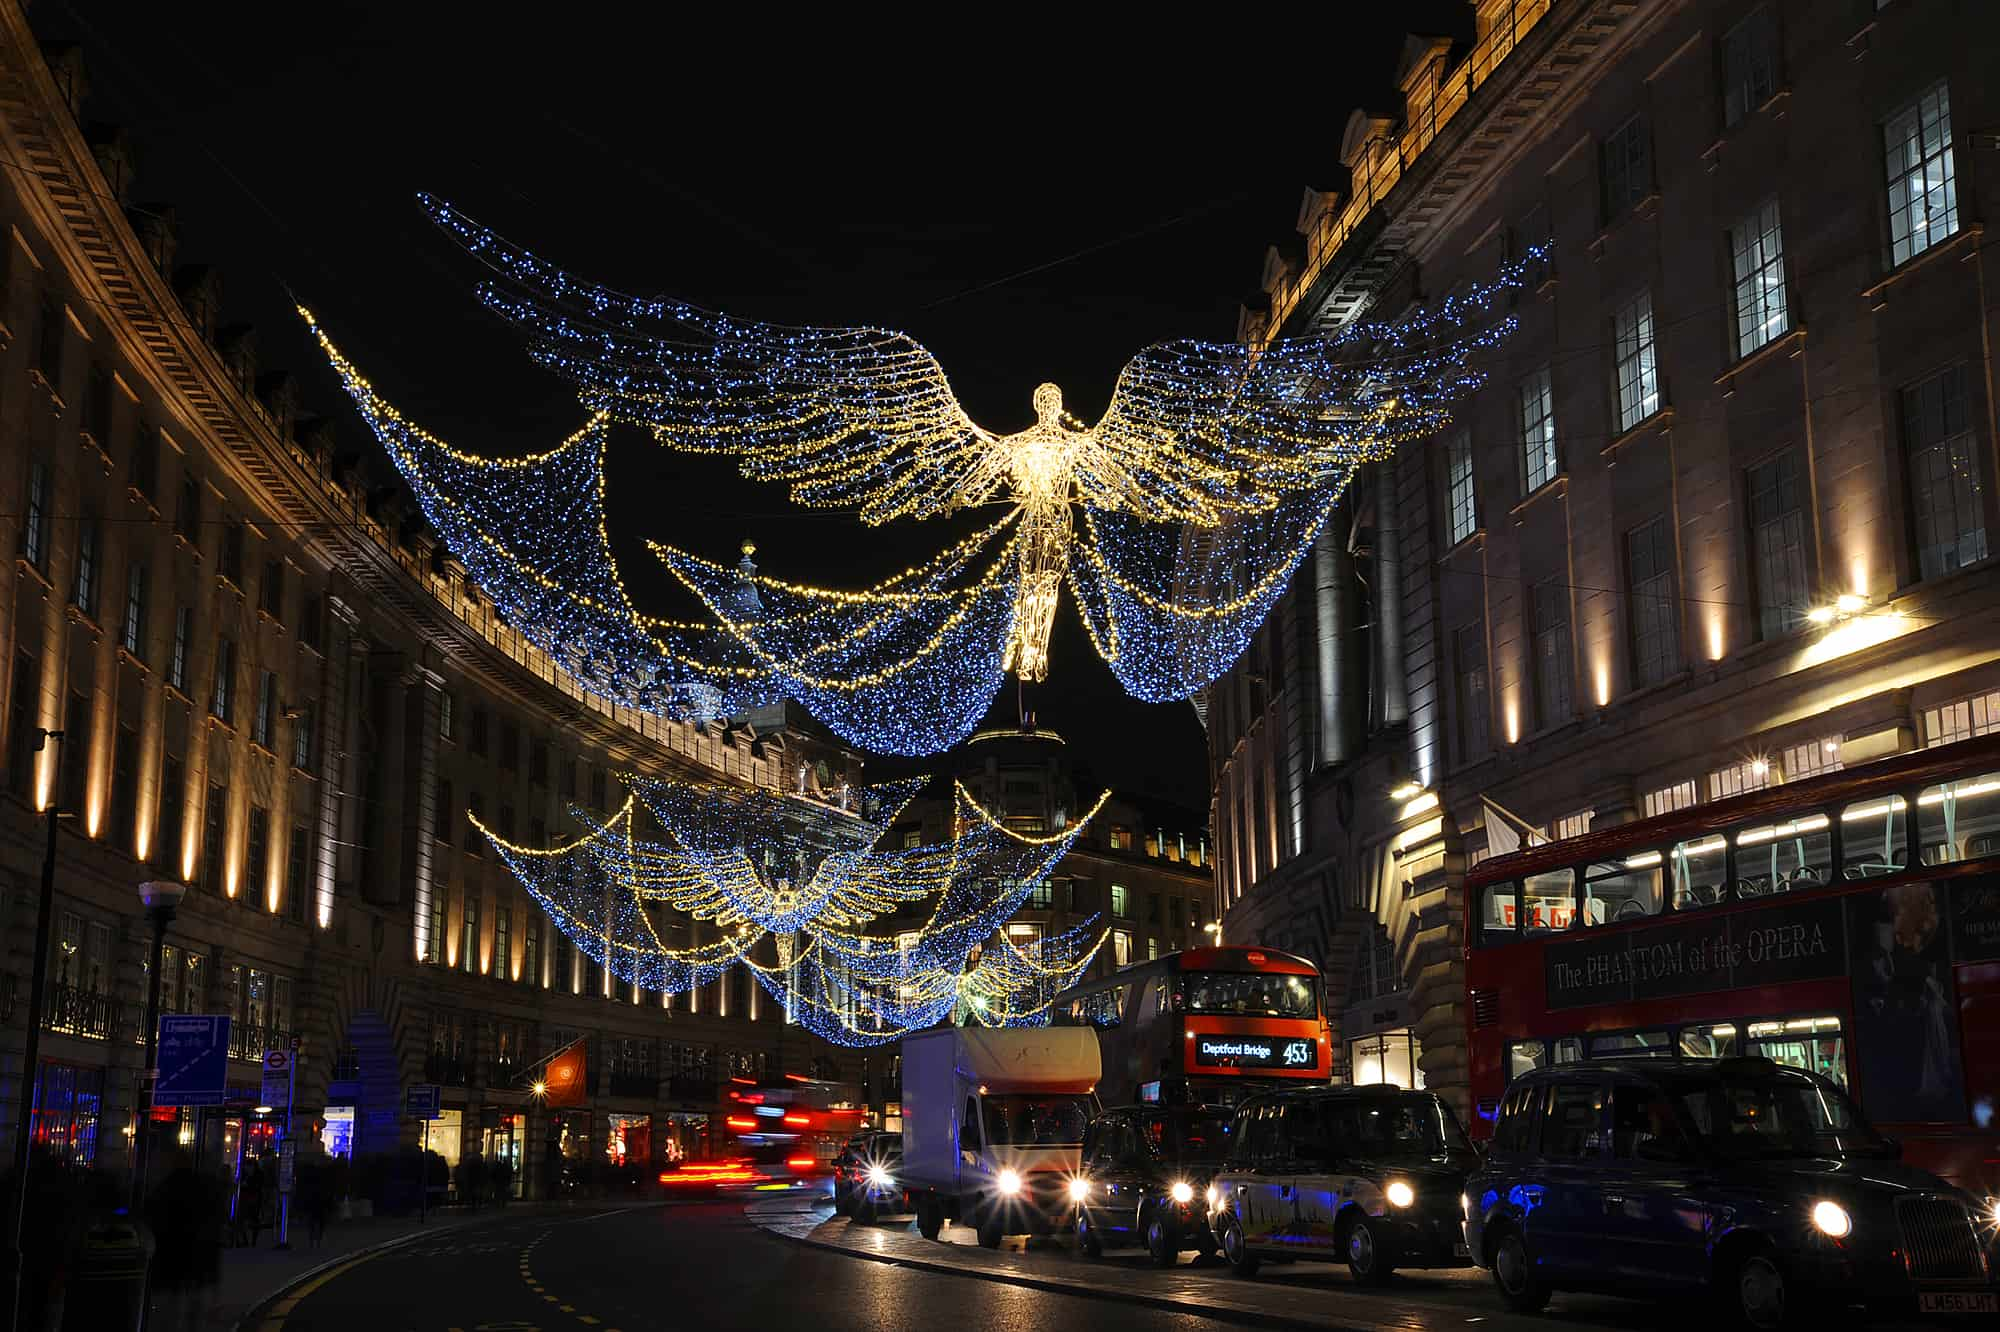 Where to find the best Christmas lights in London